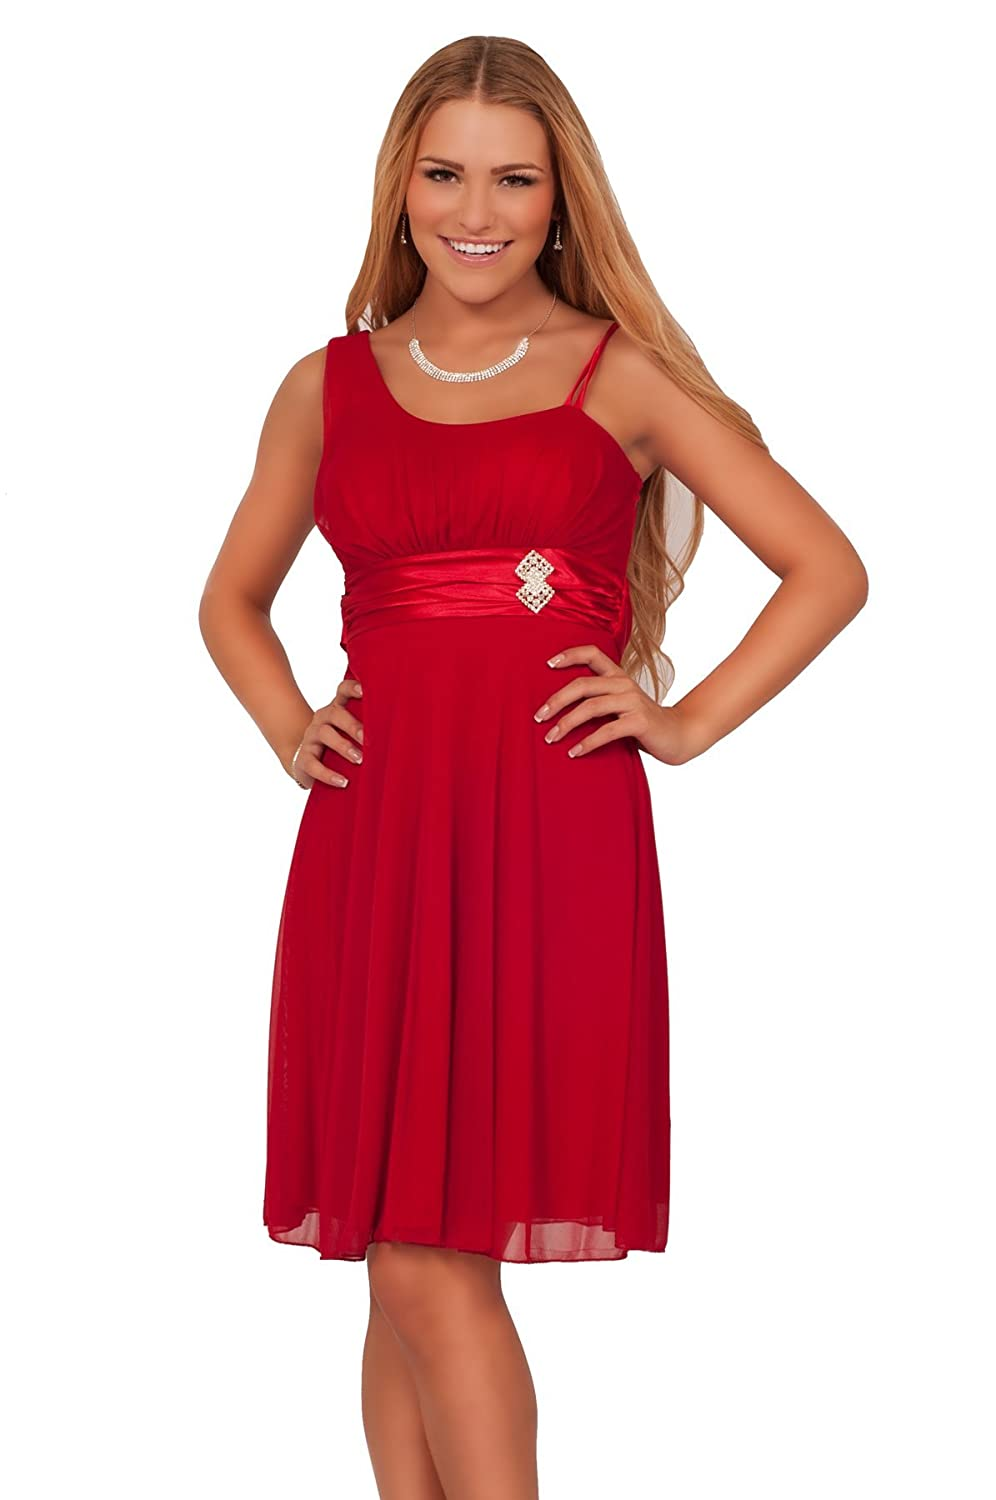 Strapped Junior Empire Waist Knee High Homecoming Bridesmaid Prom Formal Dress